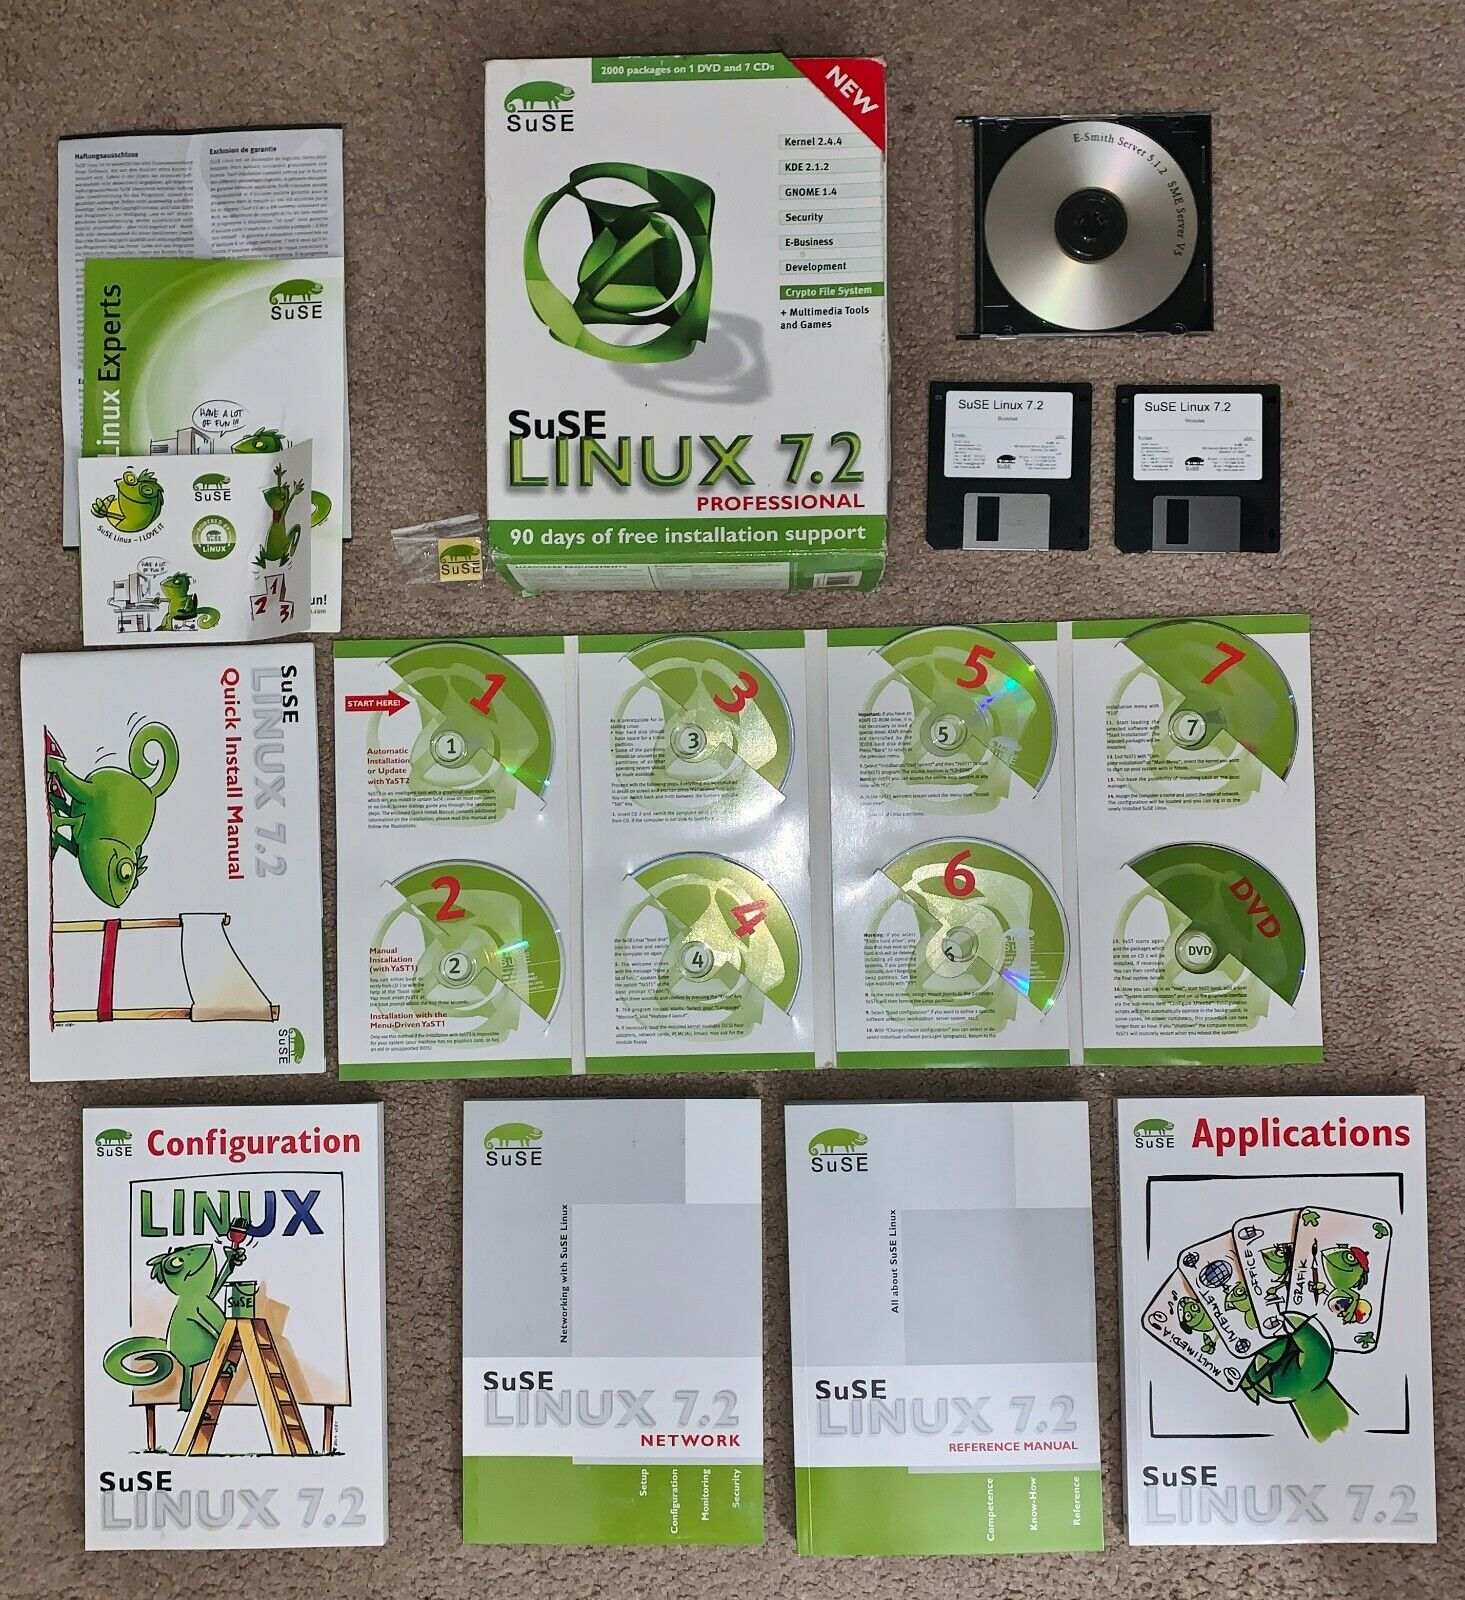 SuSE LINUX 7.2 Professional Software Package 100% Complete